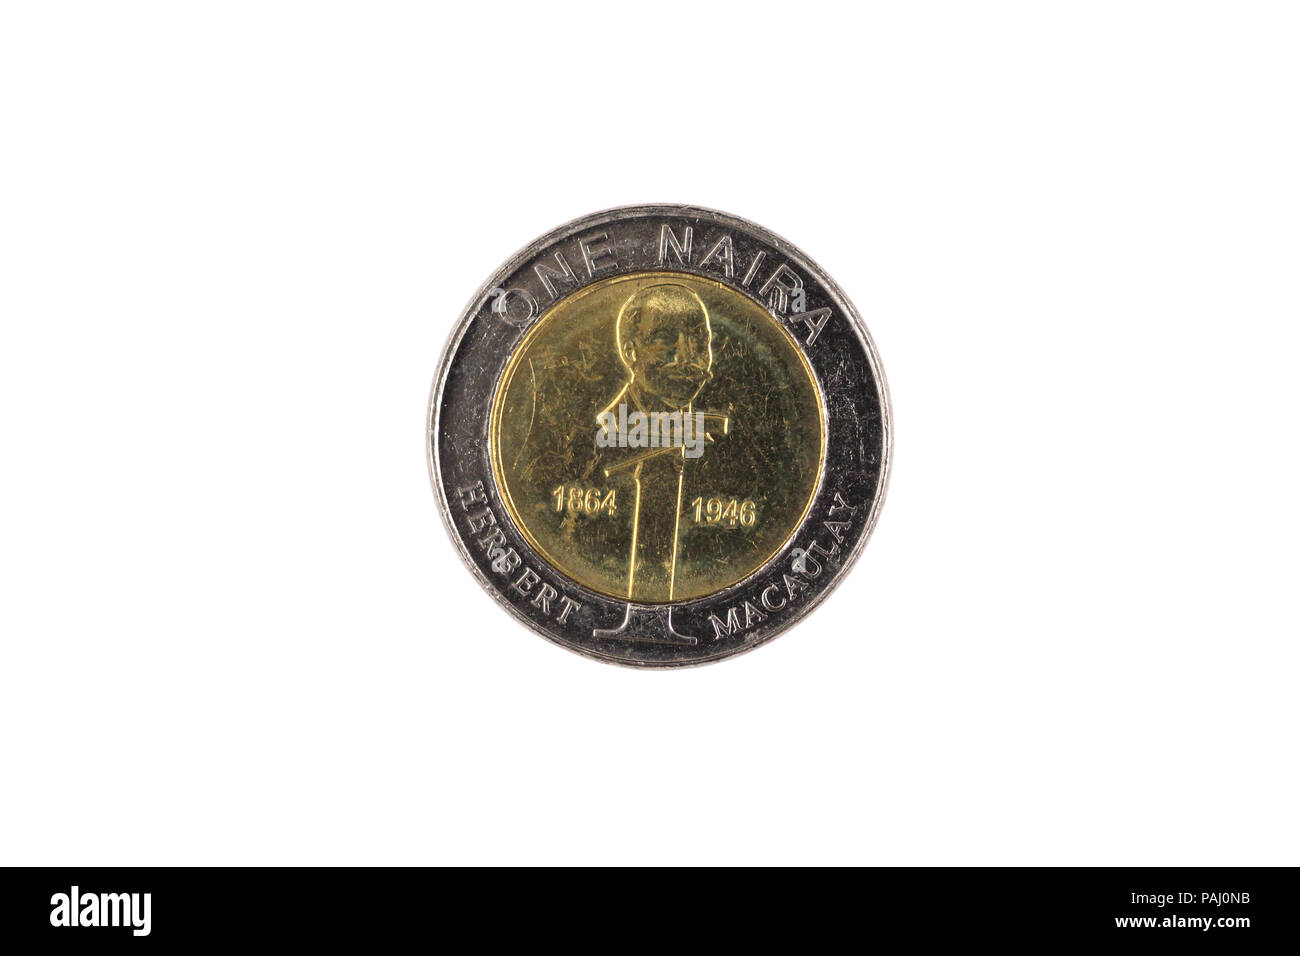 A close up image of a Nigerian one Naira bimettalic coin isolated on a white background - Stock Image